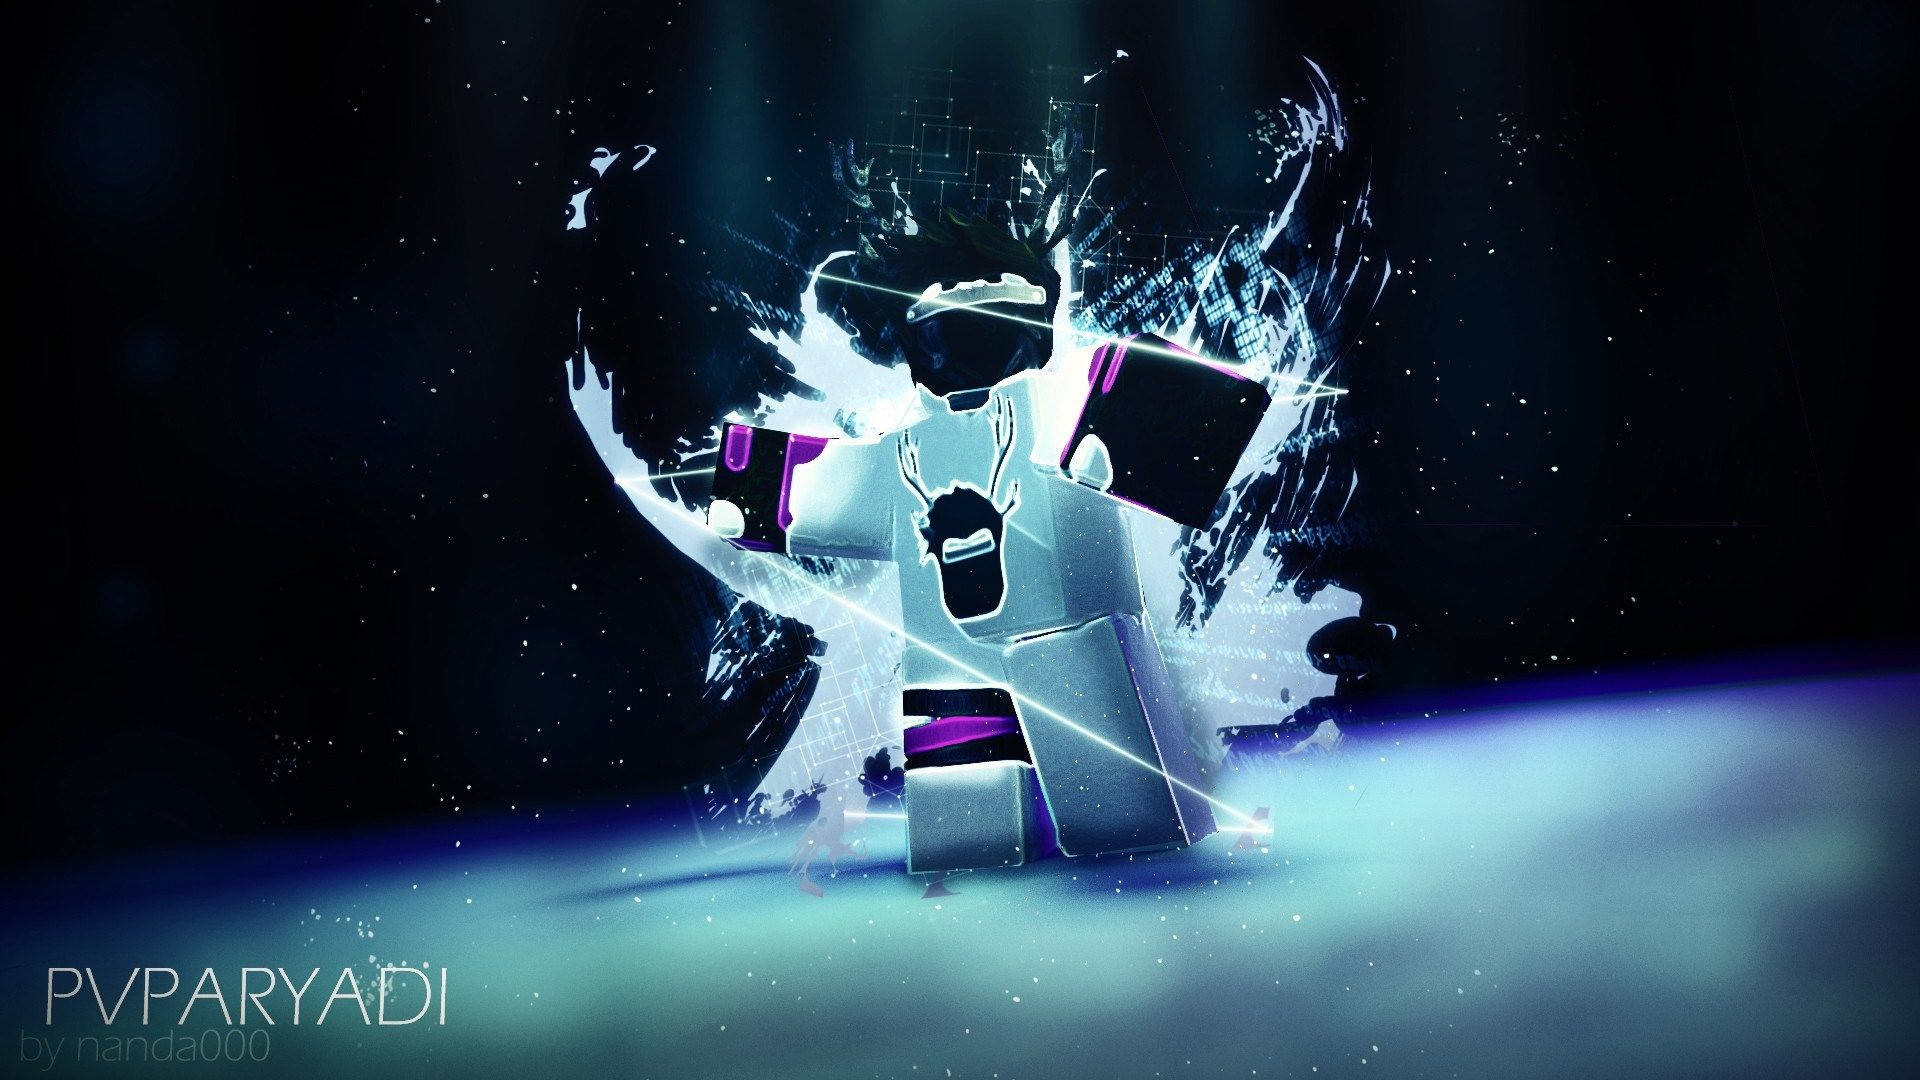 Roblox Dominus Wallpapers Top Free Roblox Dominus Backgrounds